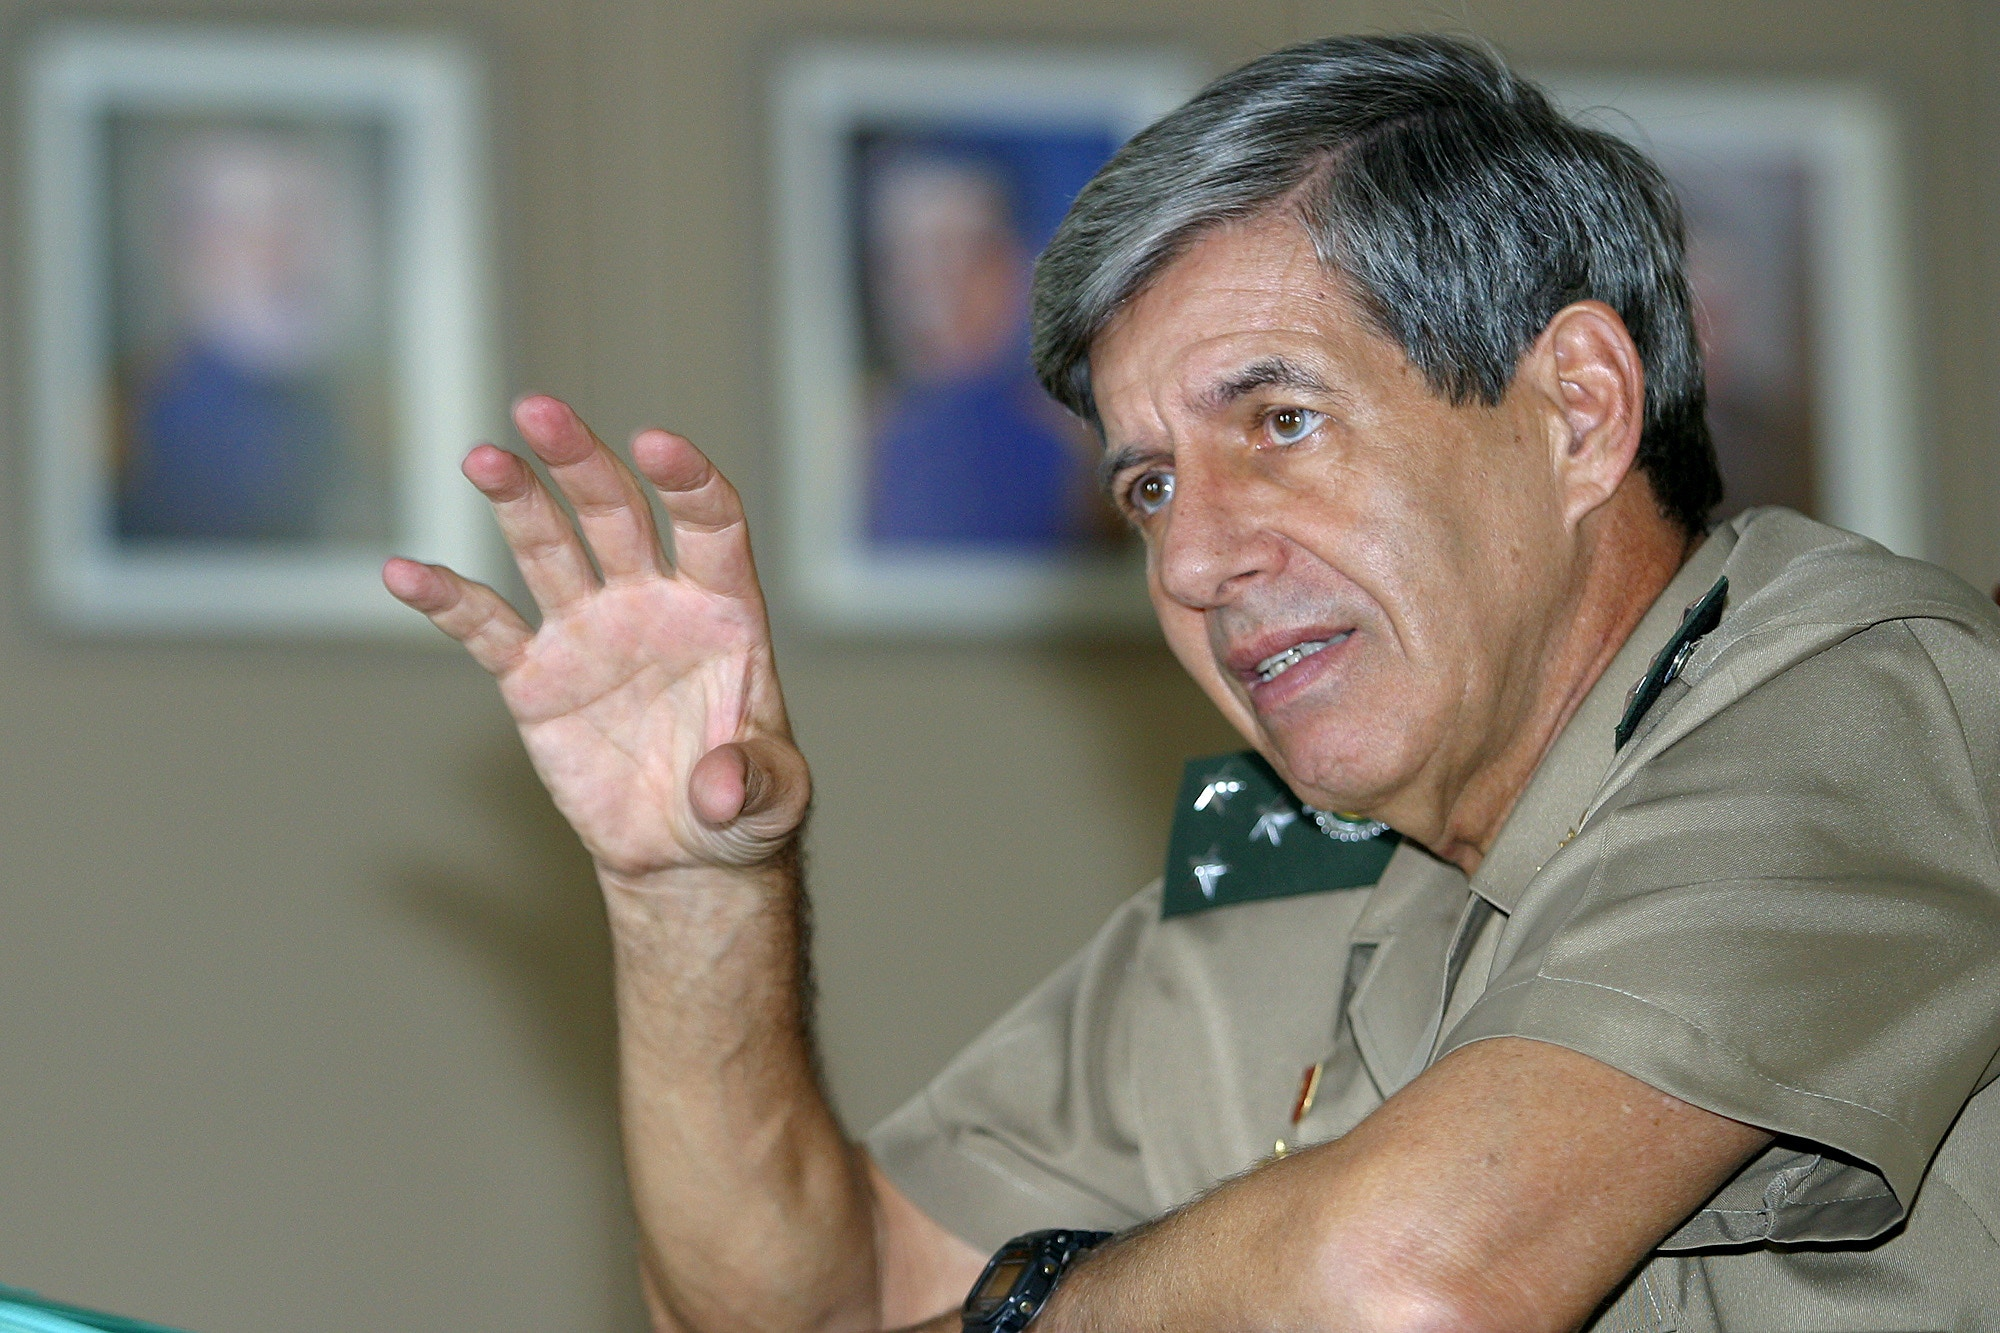 Brazilian general Augusto Heleno Ribeiro Pereira speaks during an interview in Brasilia, Monday, May 24, 2004. Pereira will lead the UN troops in Haiti starting next month. (AP Photo/Eraldo Peres)